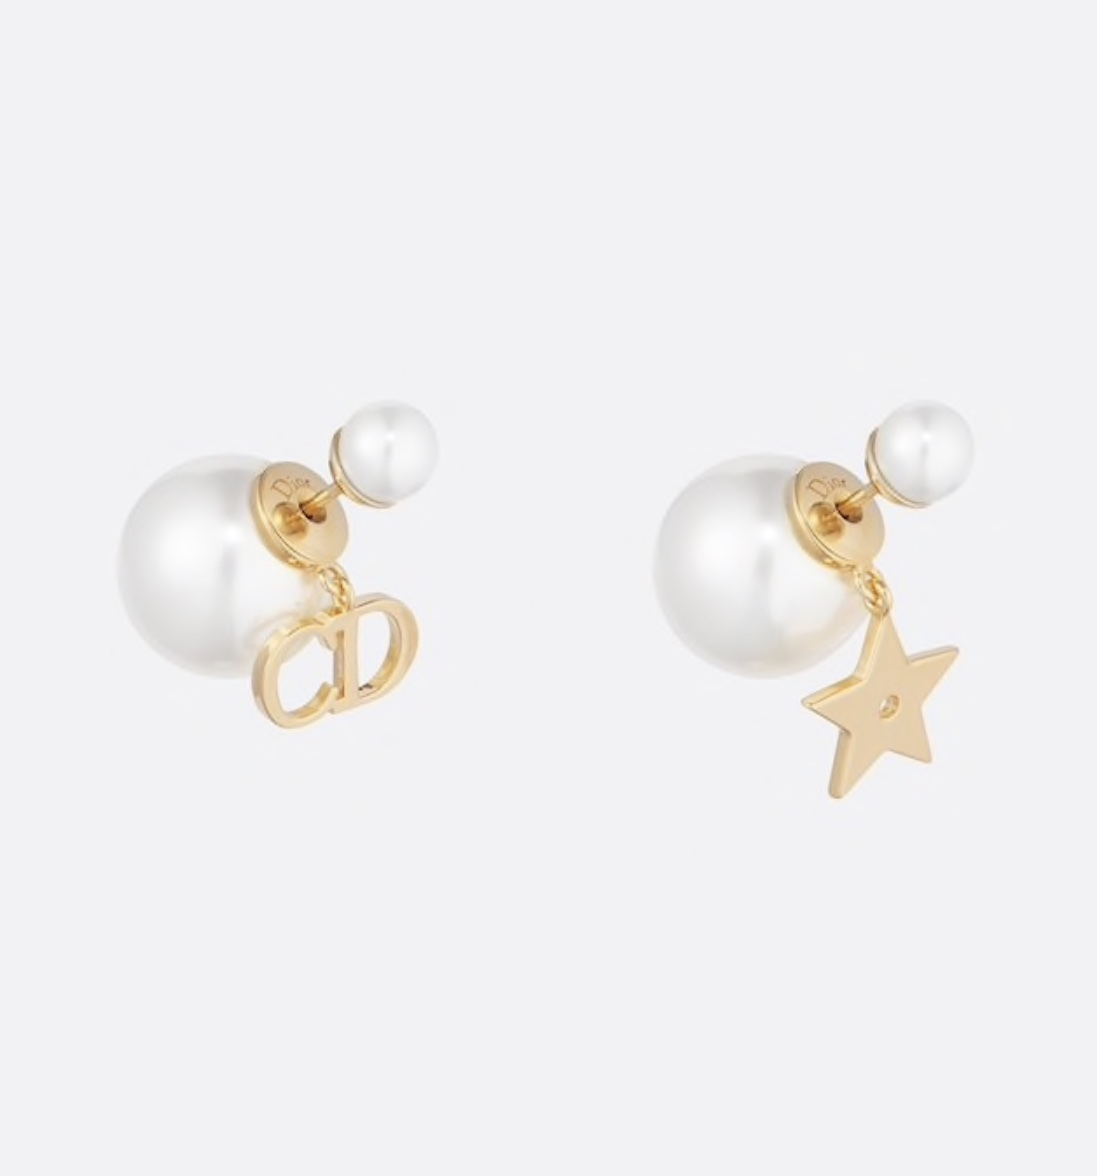 NEW Authentic Christian Dior 2019 CD LOGO STAR DANGLE DOUBLE PEARL Earrings